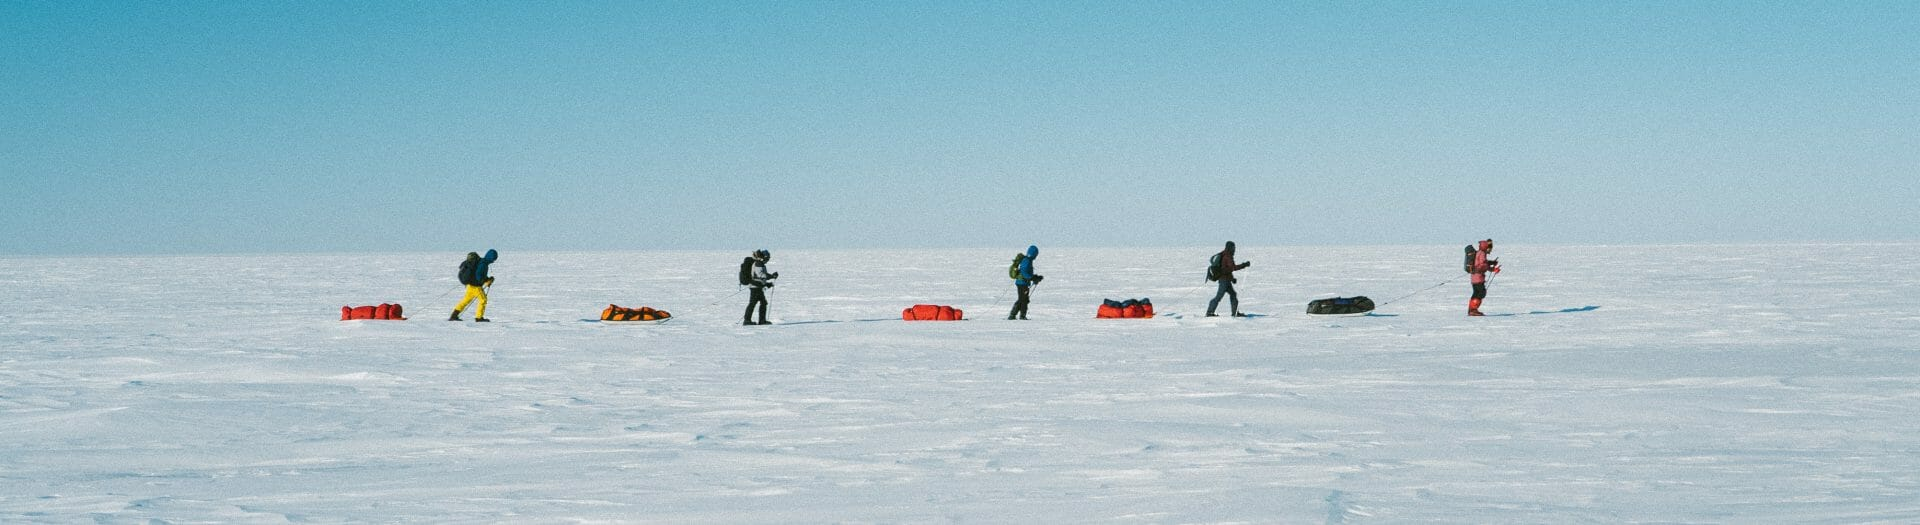 Magnetic north pole reach beyond expedition